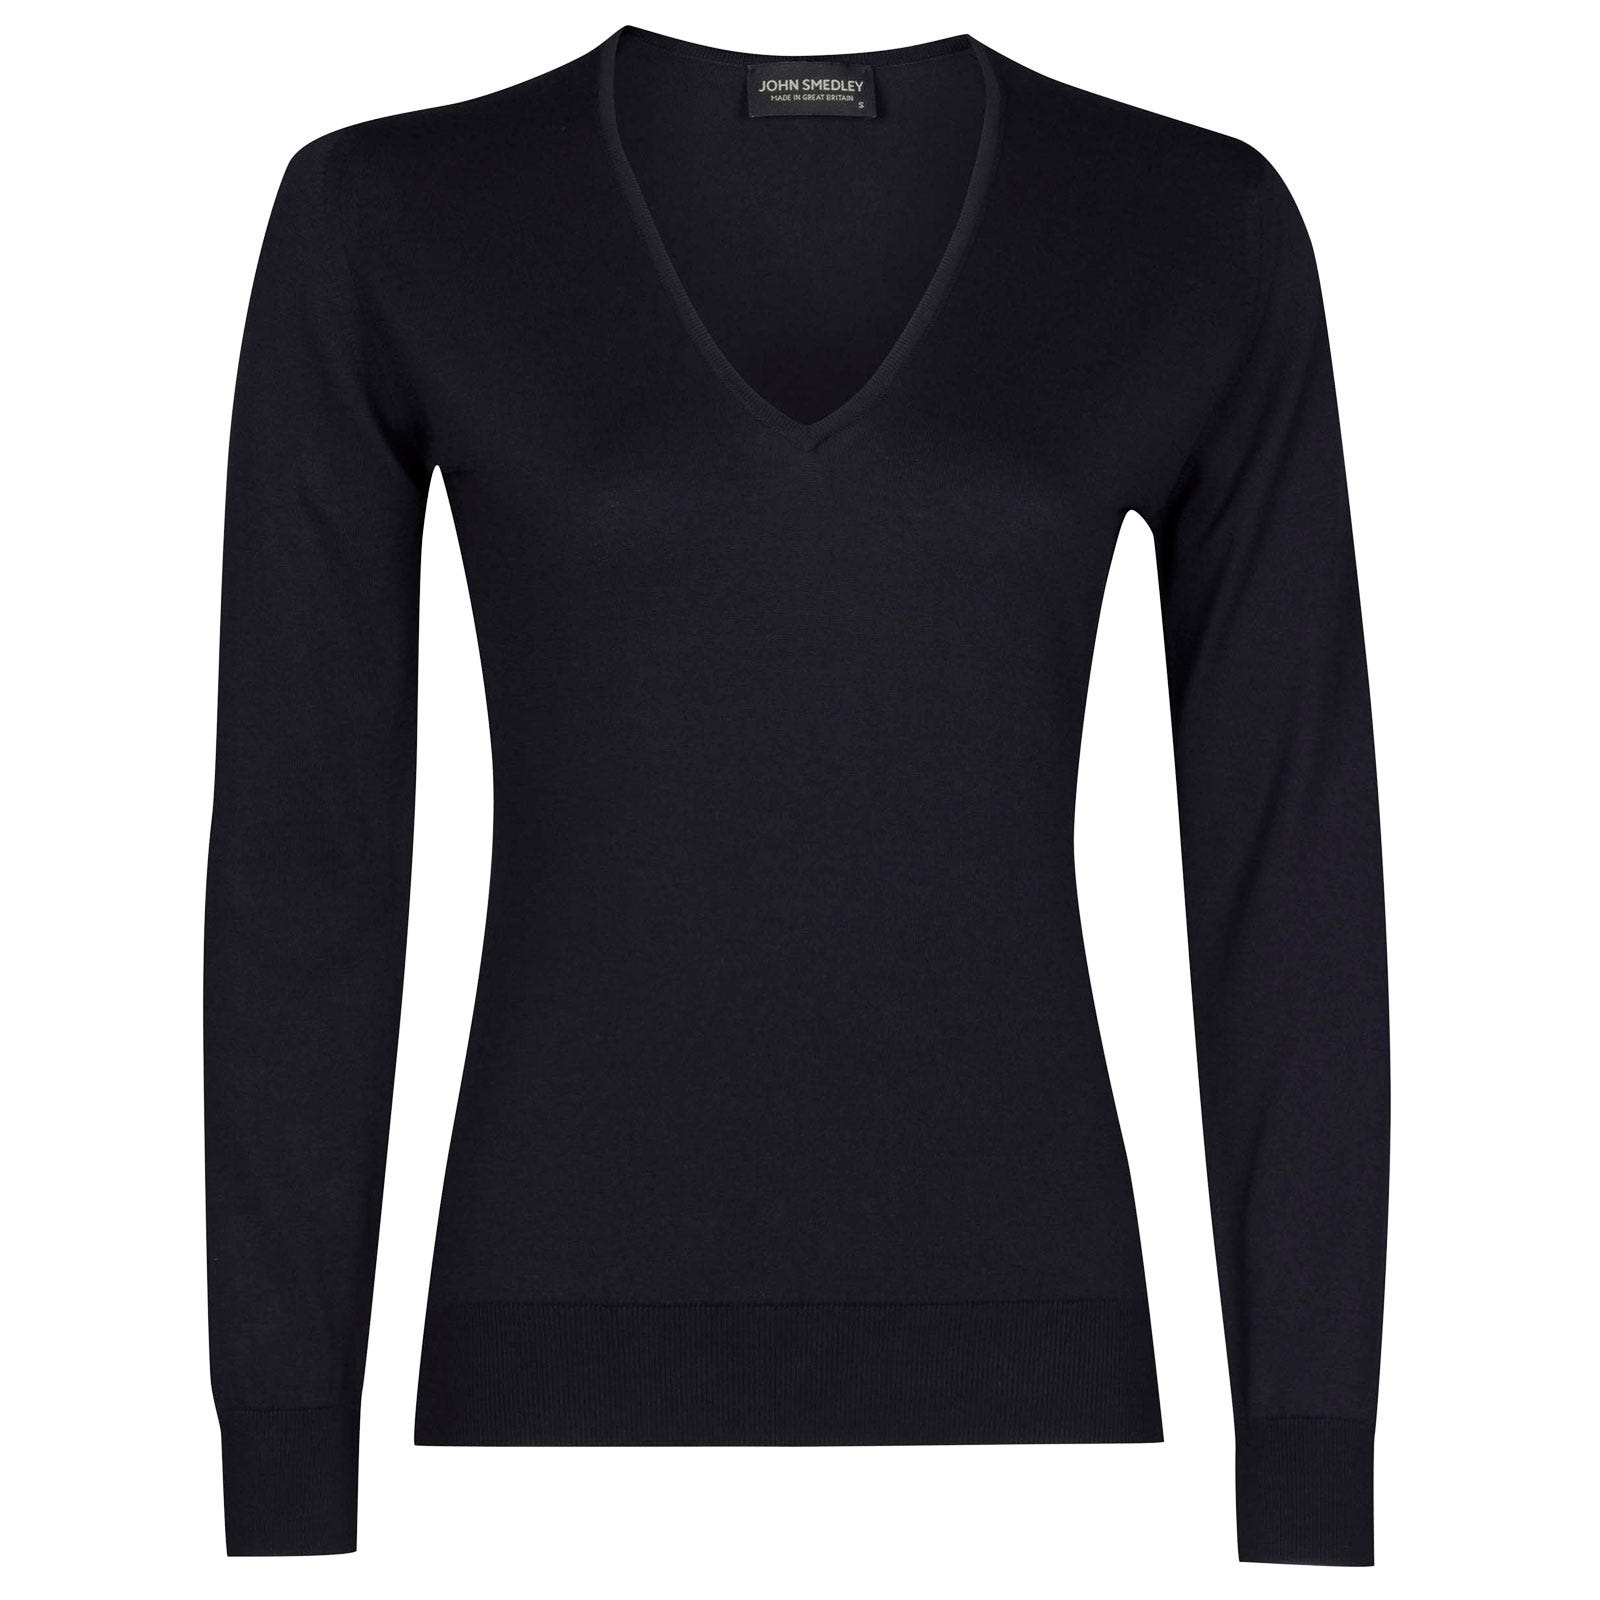 John Smedley putney Sea Island Cotton Sweater in Navy-L